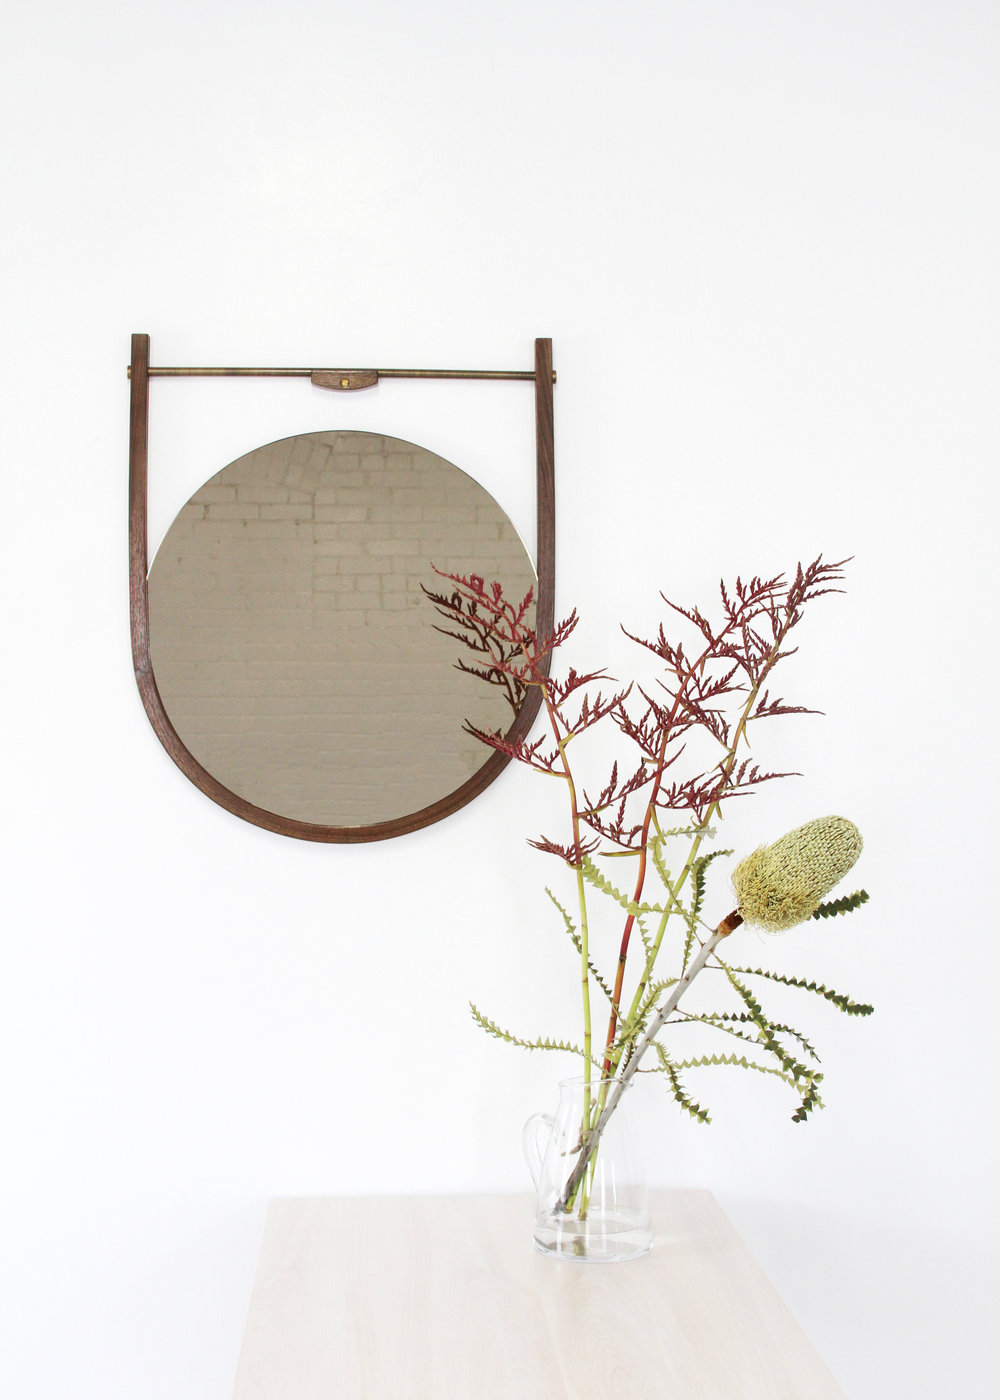 O&G Studio Moana Mirror Solid Walnut Bronze Glass Brass Hardware Protea Banksia